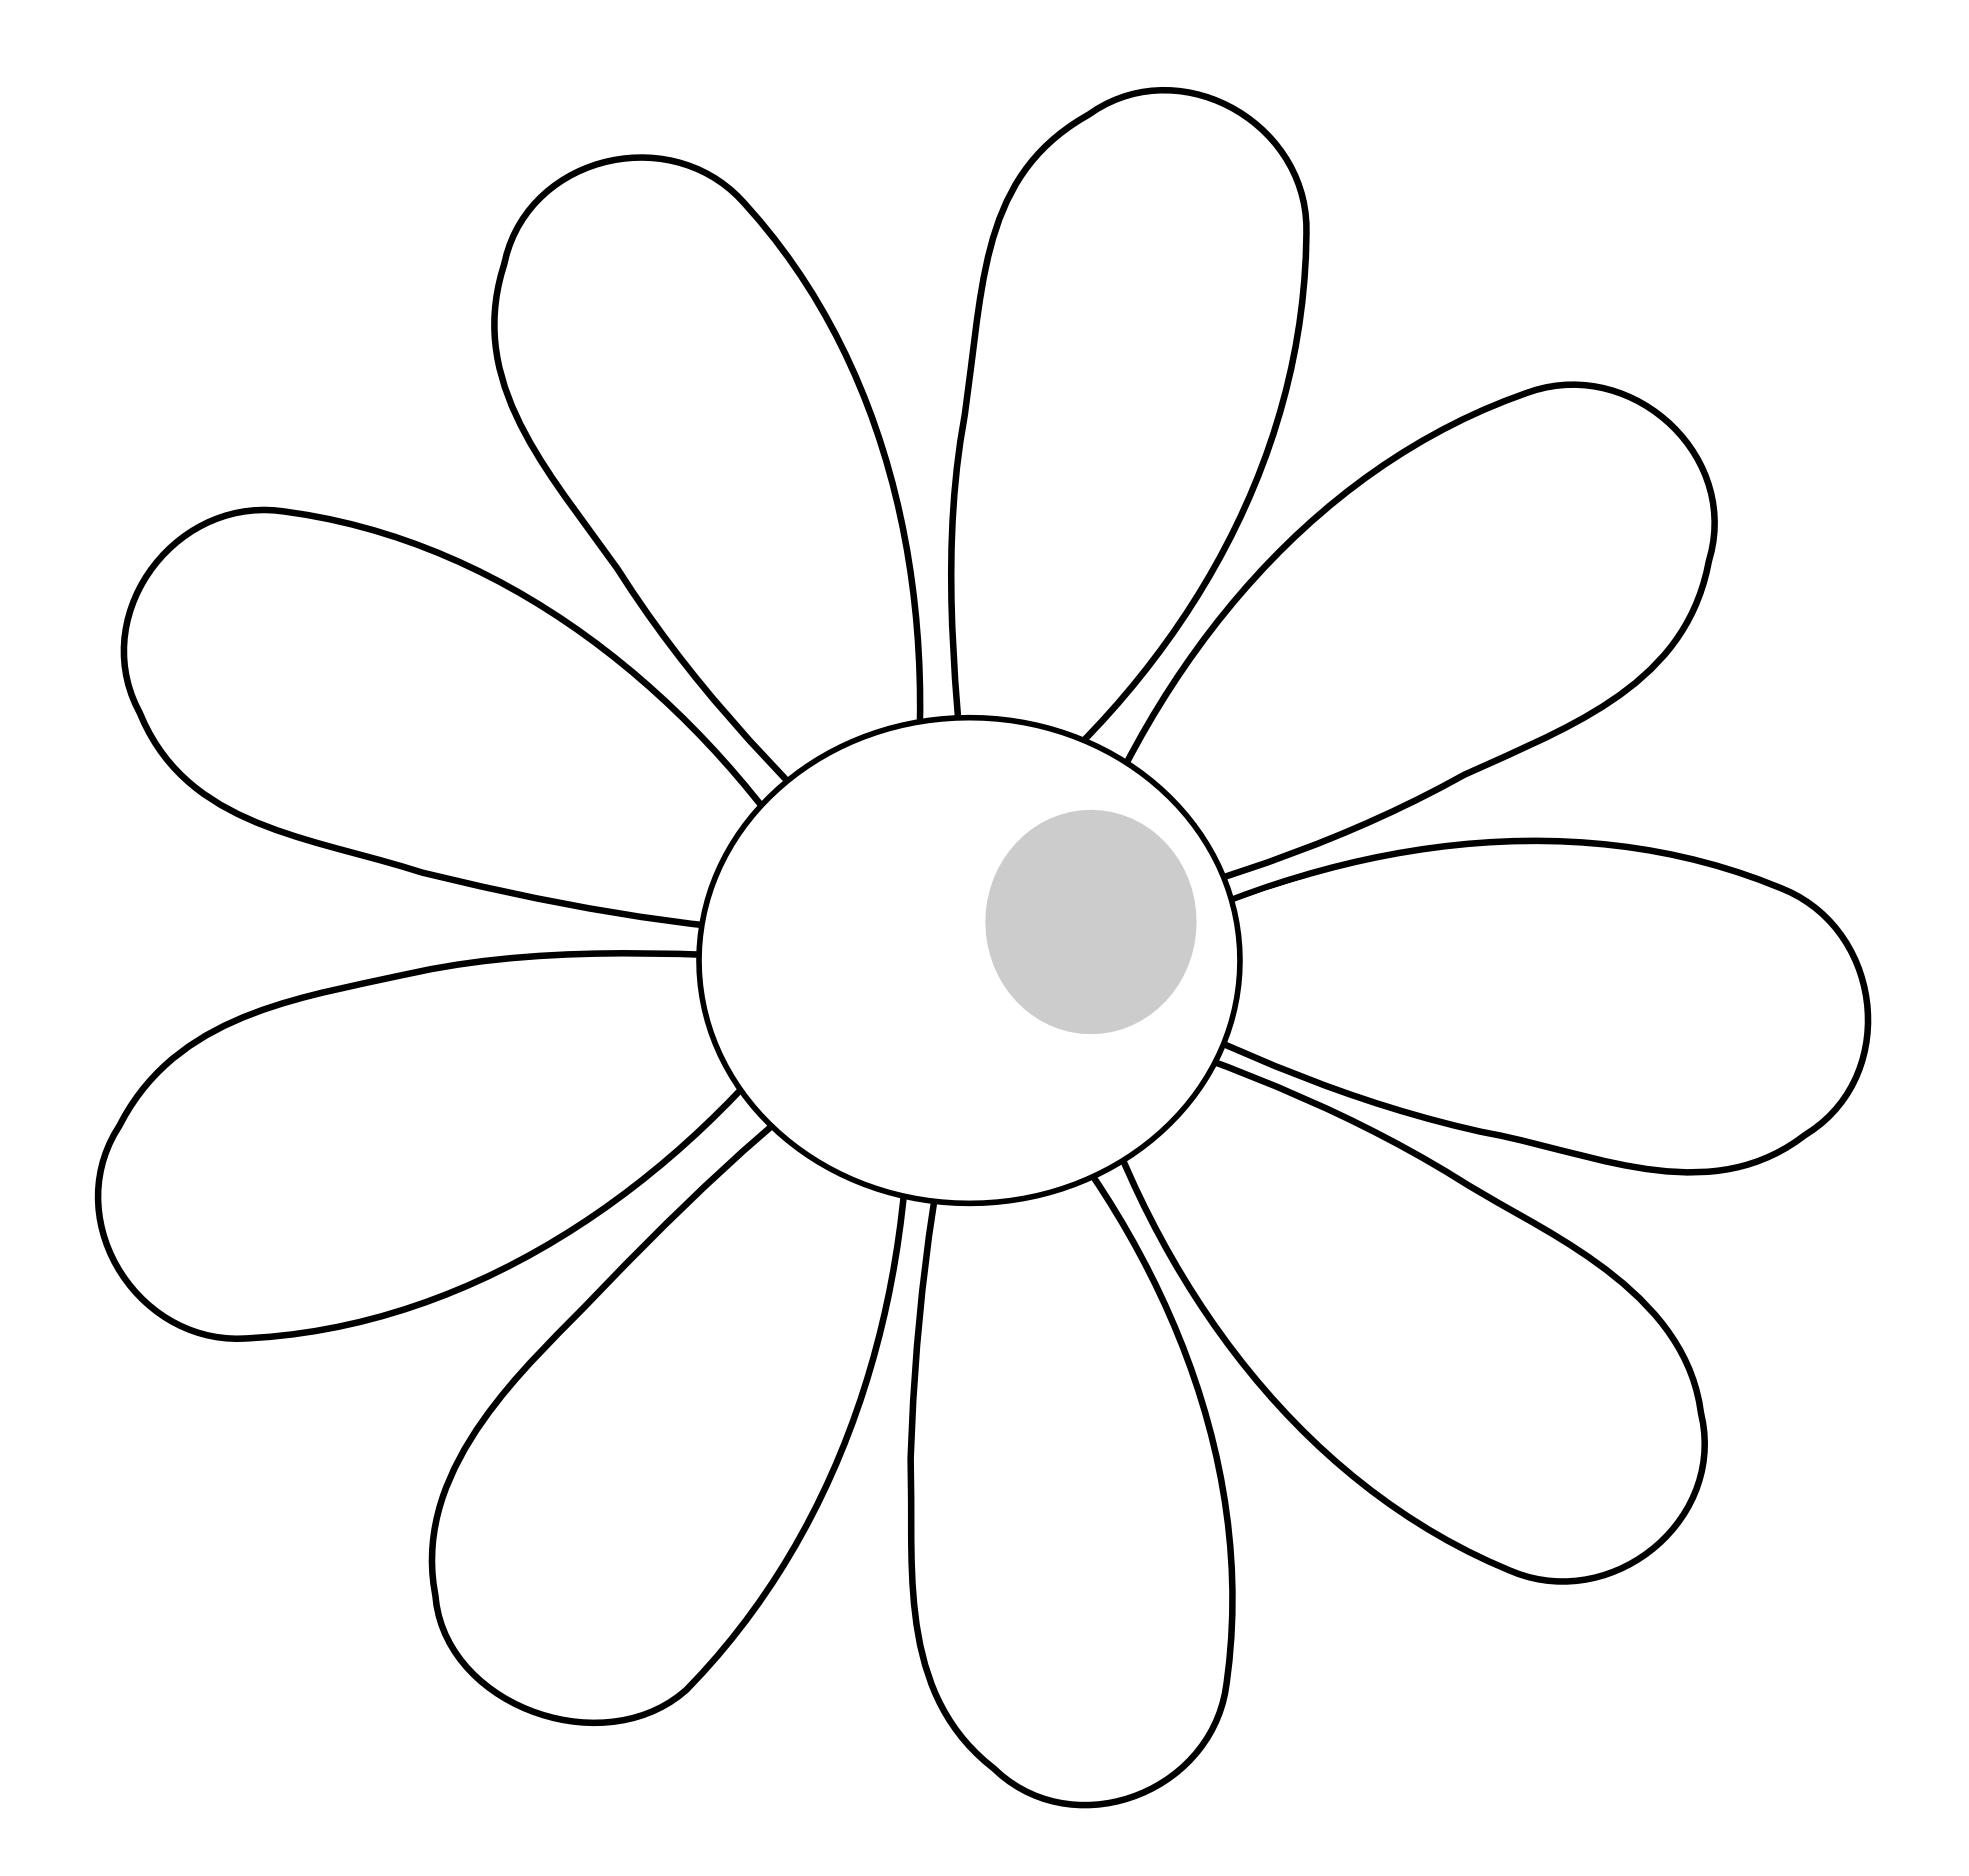 Simple black and white flower clipart png freeuse download Simple Flower Clipart Black And White | Clipart Panda - Free Clipart ... png freeuse download